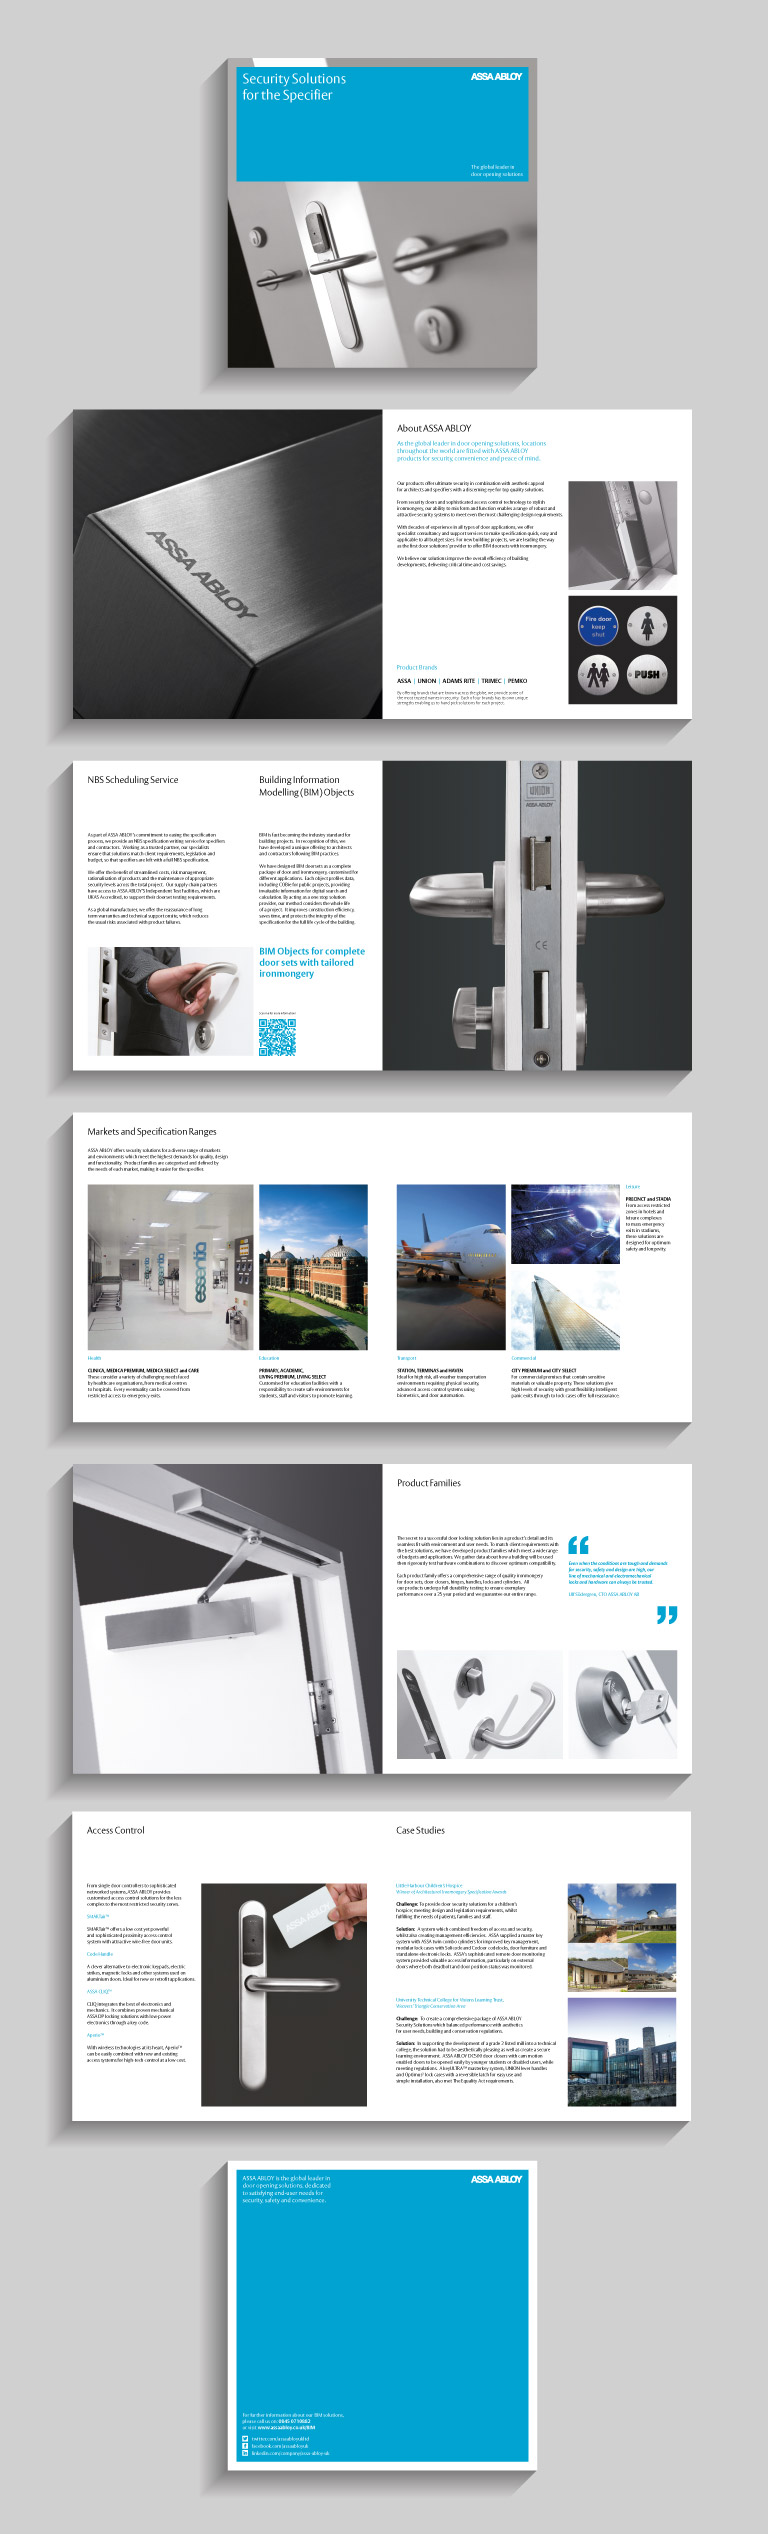 Pages from the ASSA ABLOY brochure - mobile